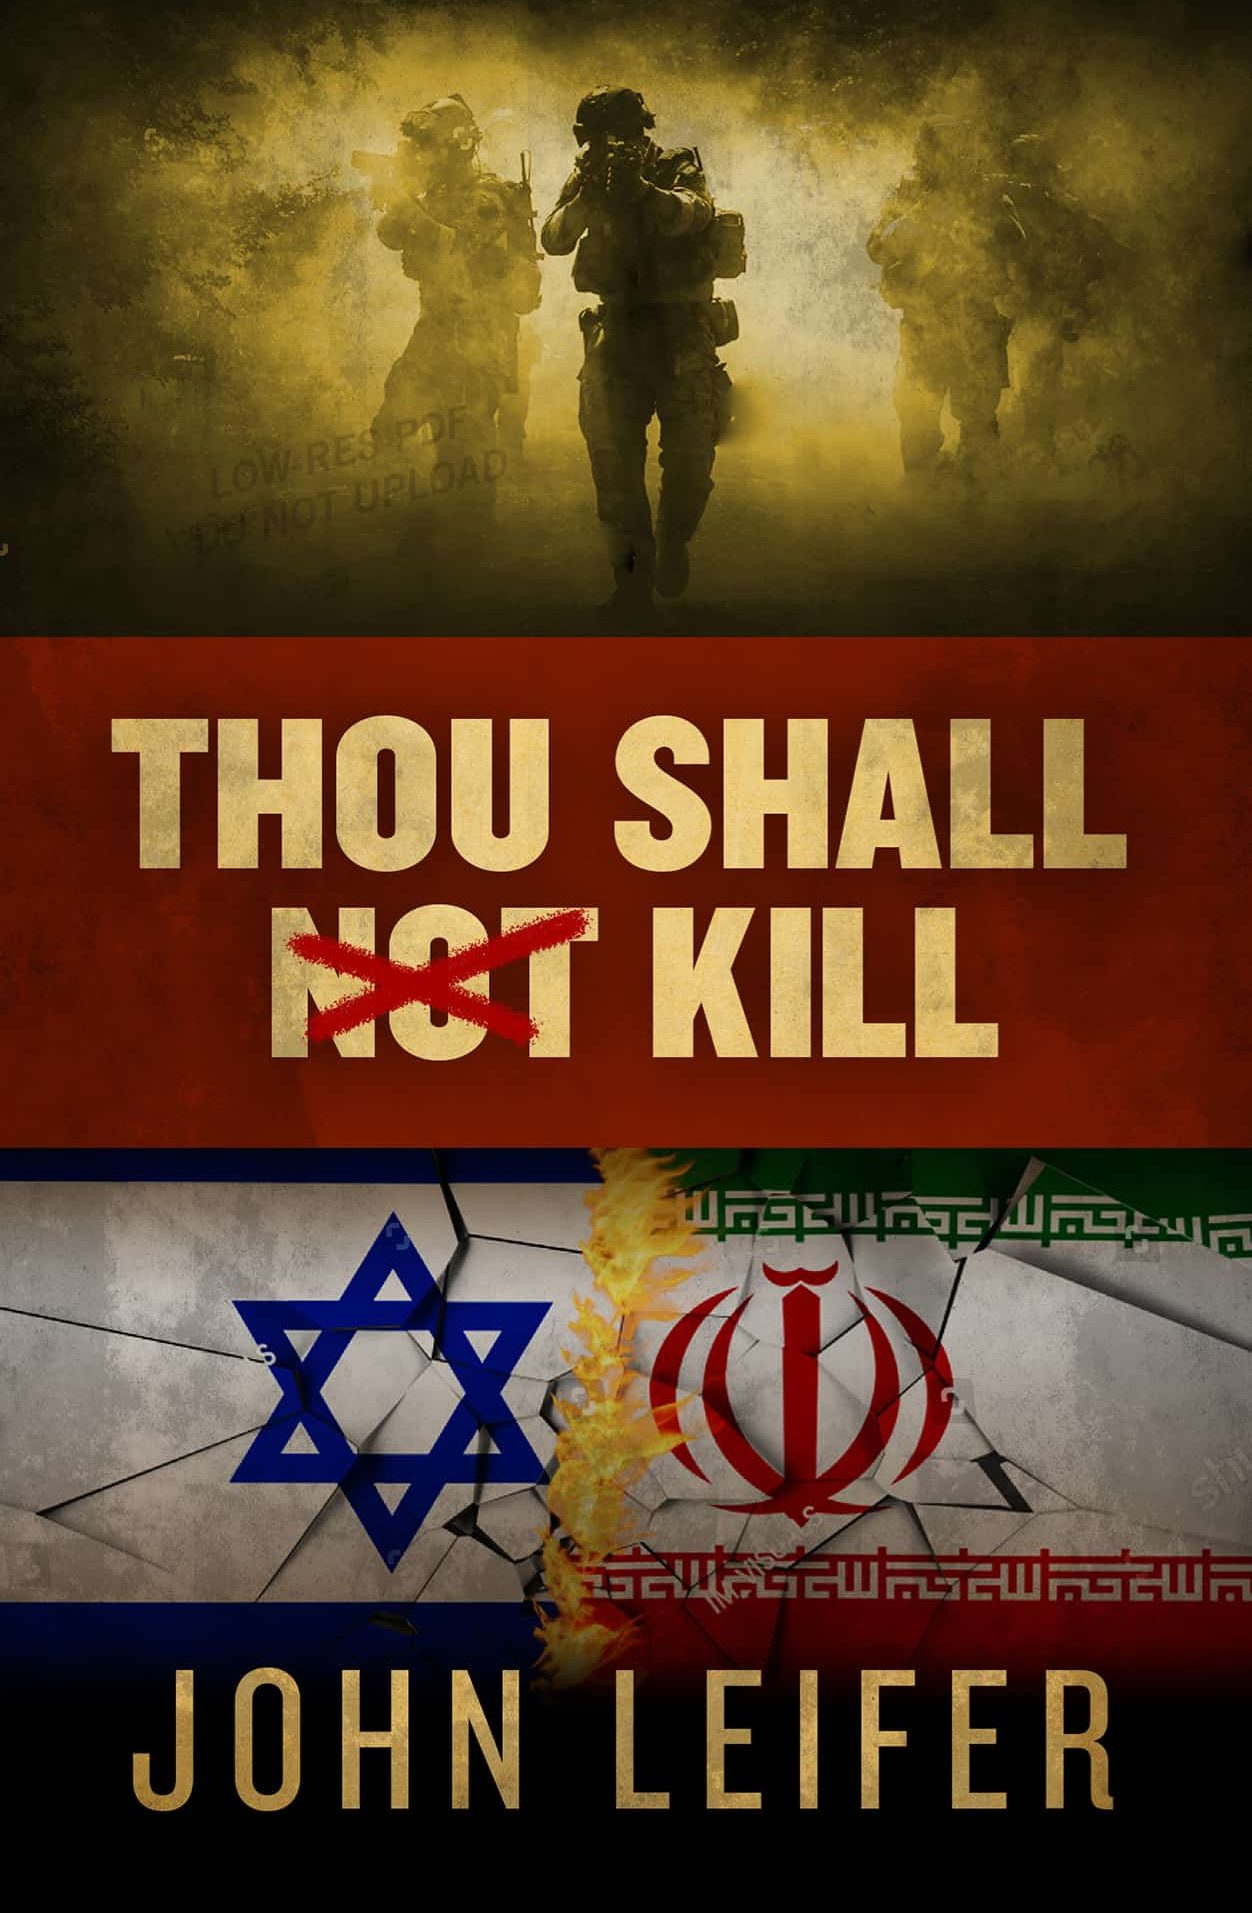 thou shall not kill 2019 by john leifer e1557171479886 - Homepage